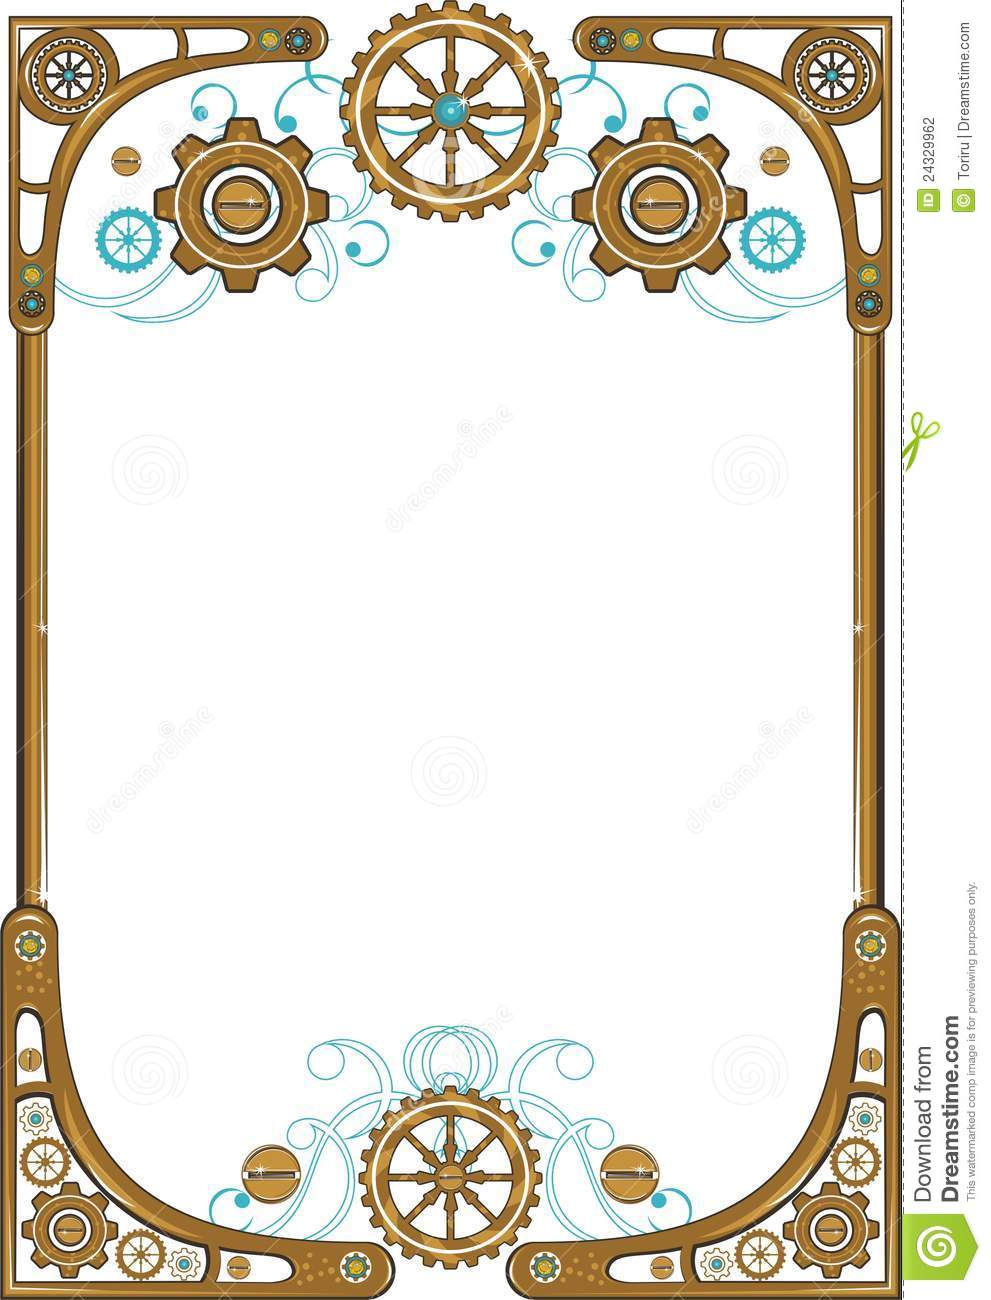 Steampunk frame stock vector. Image of ancient ...